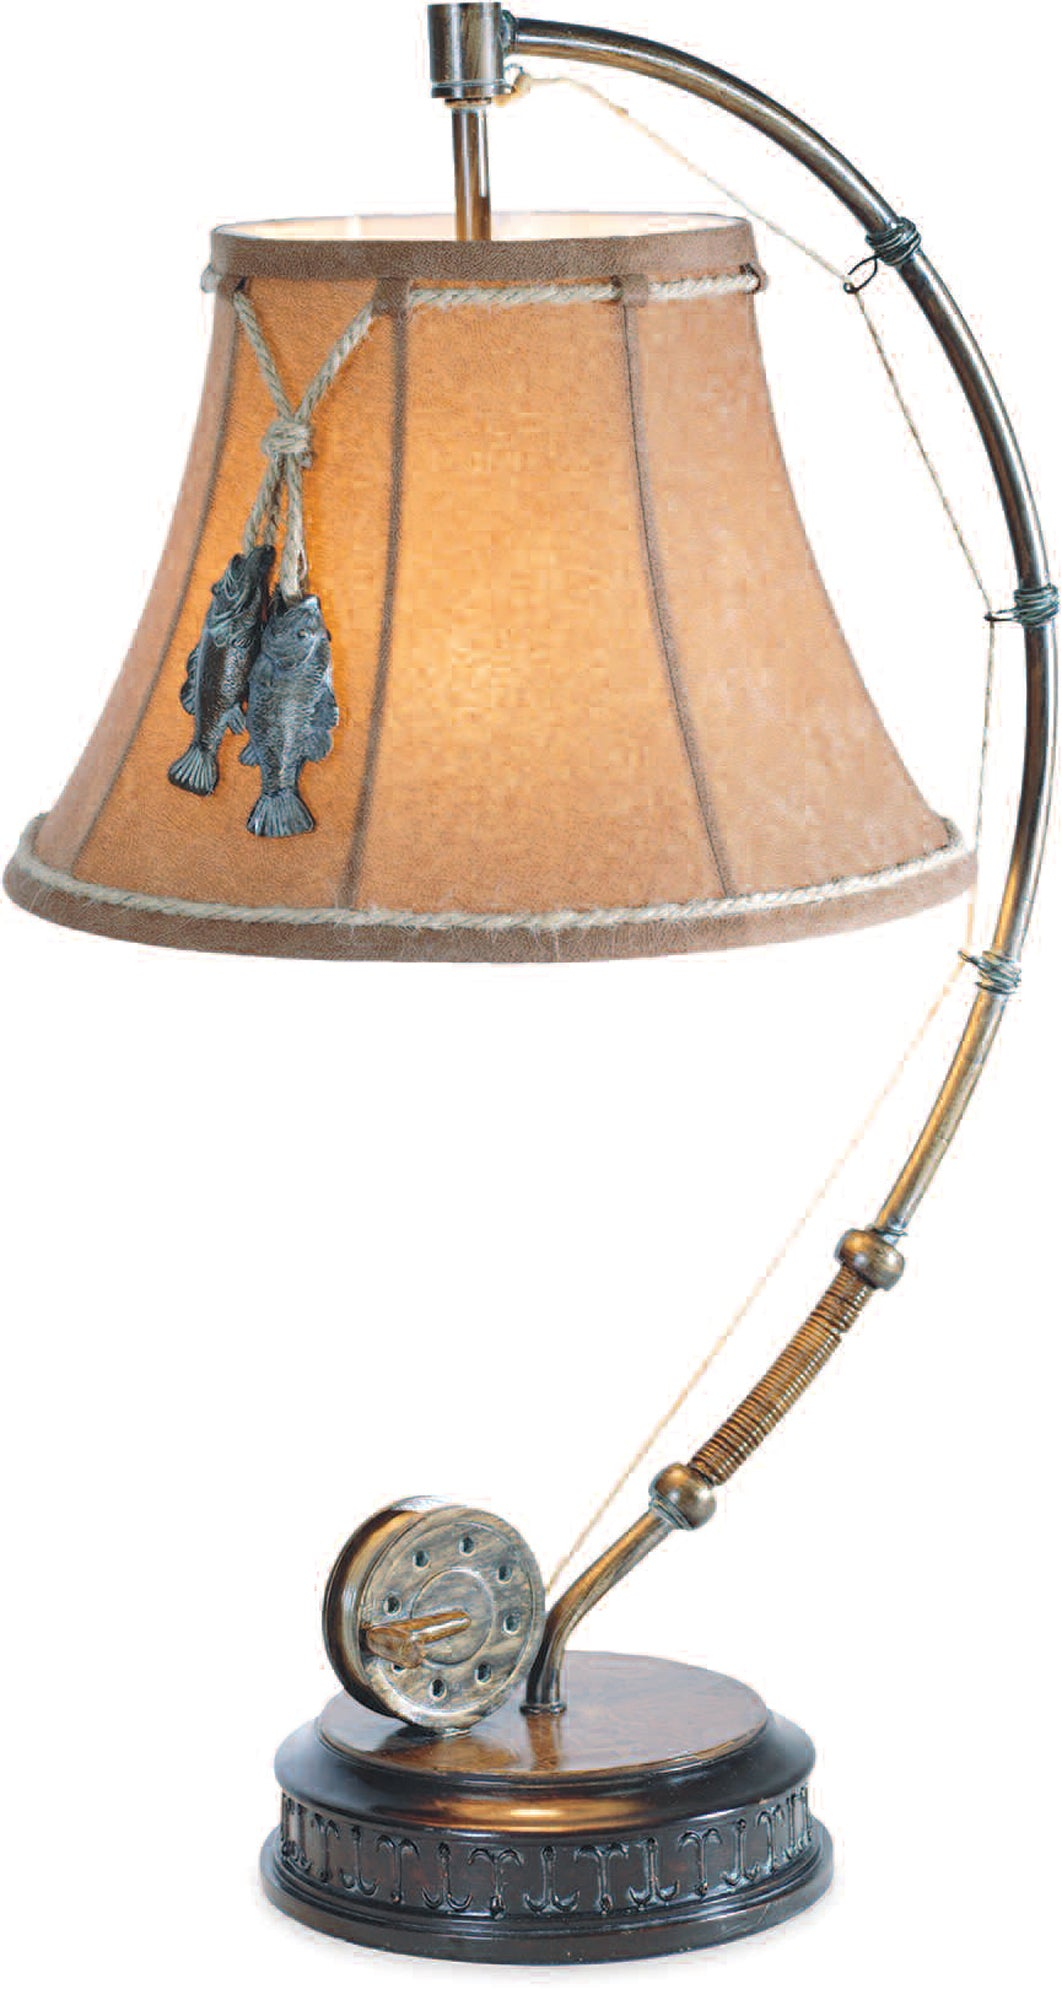 CL1817S -  CATCH OF THE DAY TABLE LAMP by Vintage Direct Lamps - ThunderHorseCabin.com